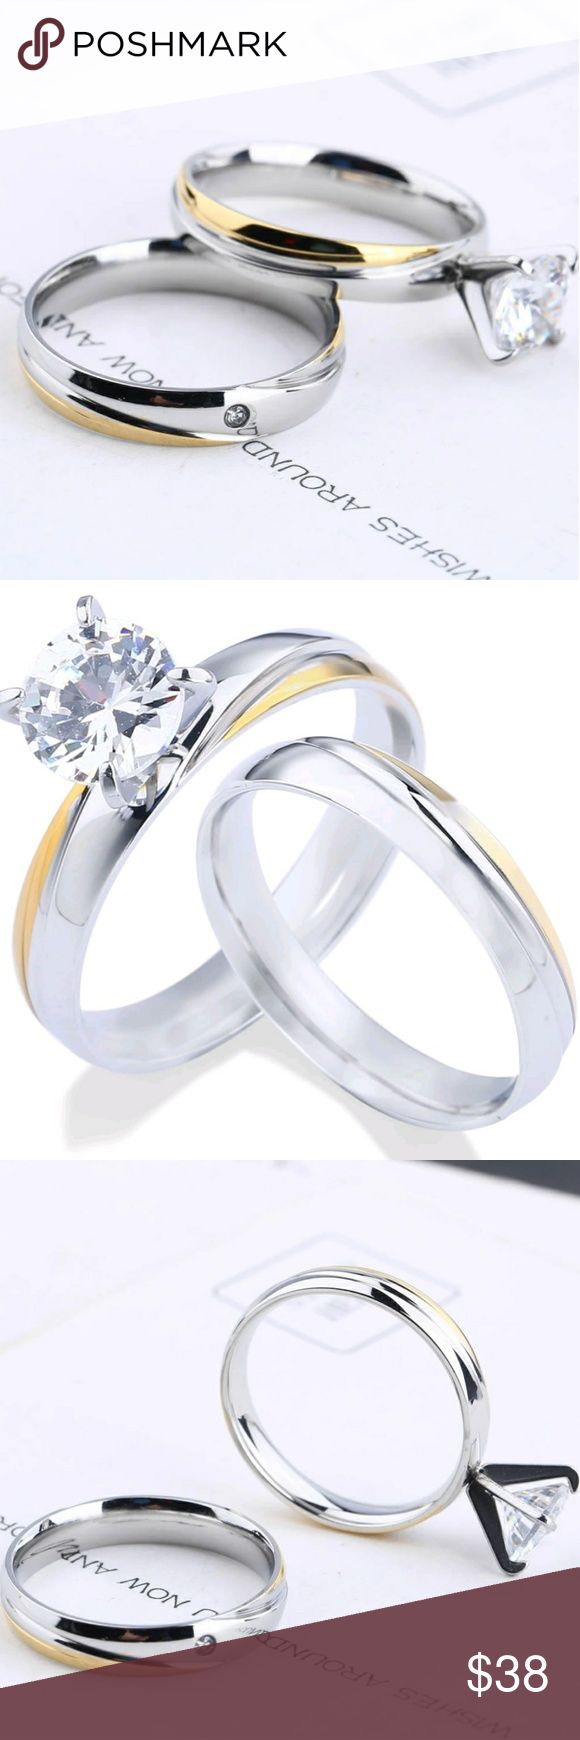 NWT Stainless Steel Wedding Set Size 6 A uniquely designed gold and silver color with a small cz in the band. The large cz is 2 karats. Stunningly beautiful. Jewelry Rings